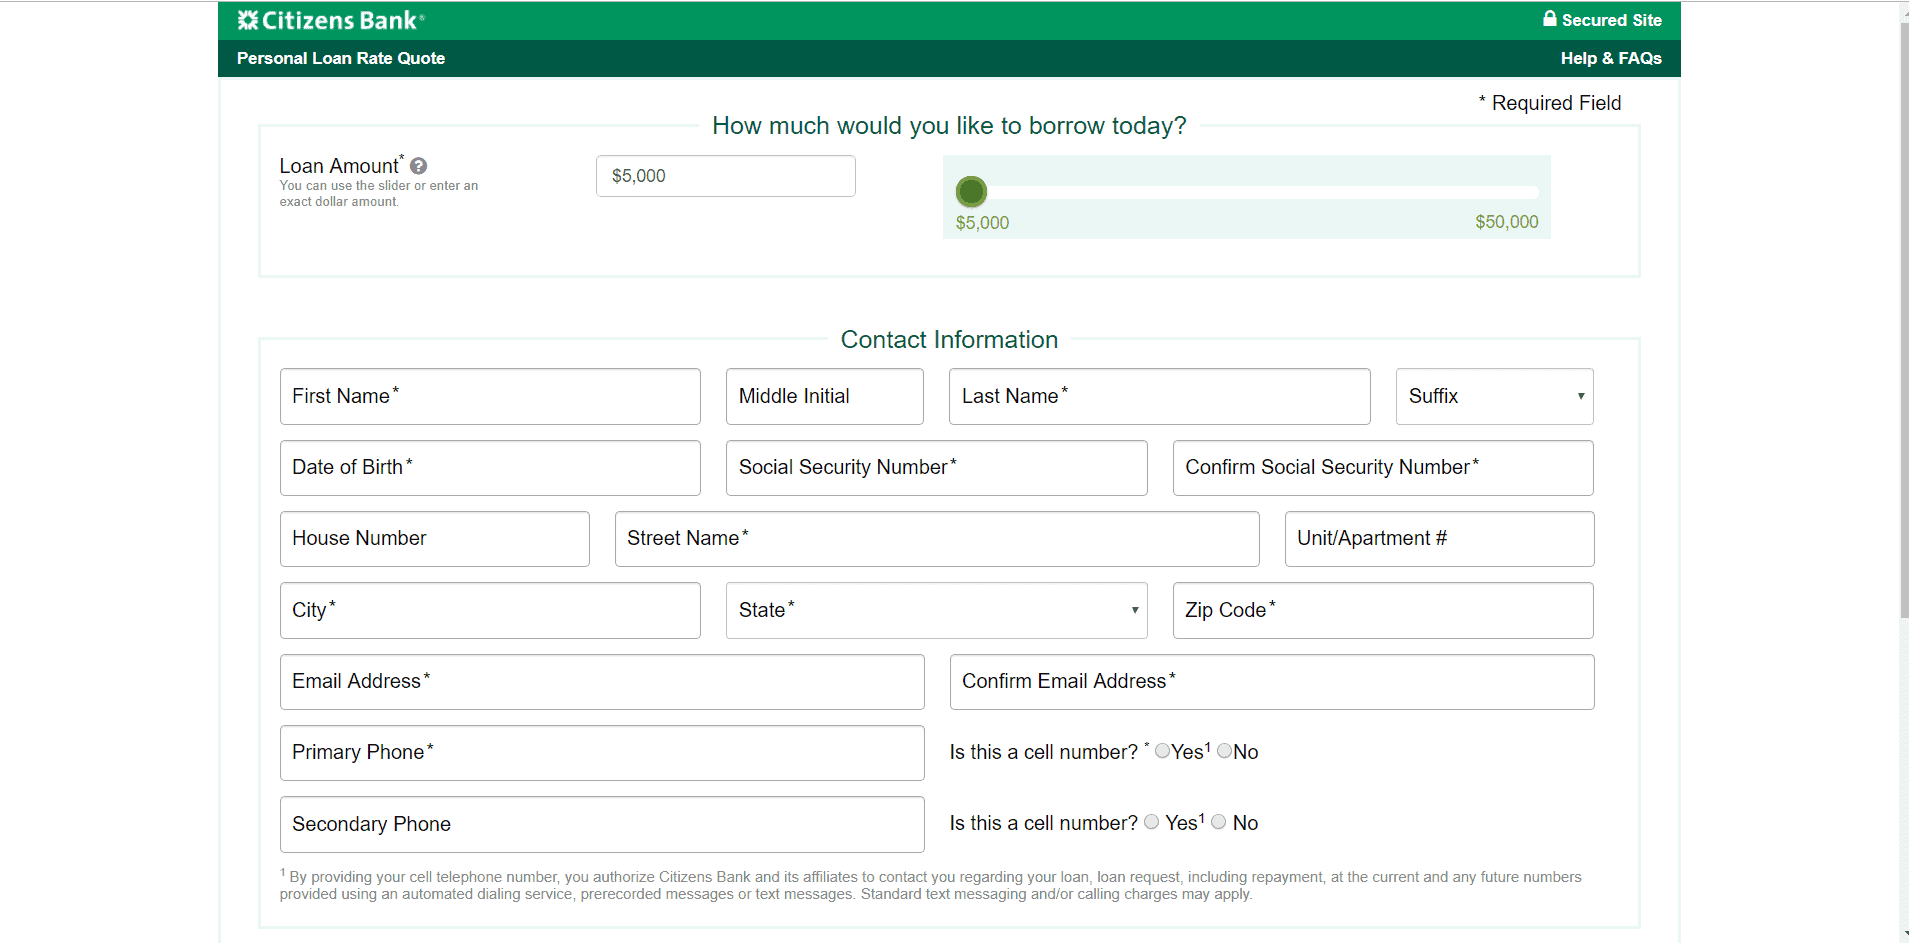 Citizens Bank website